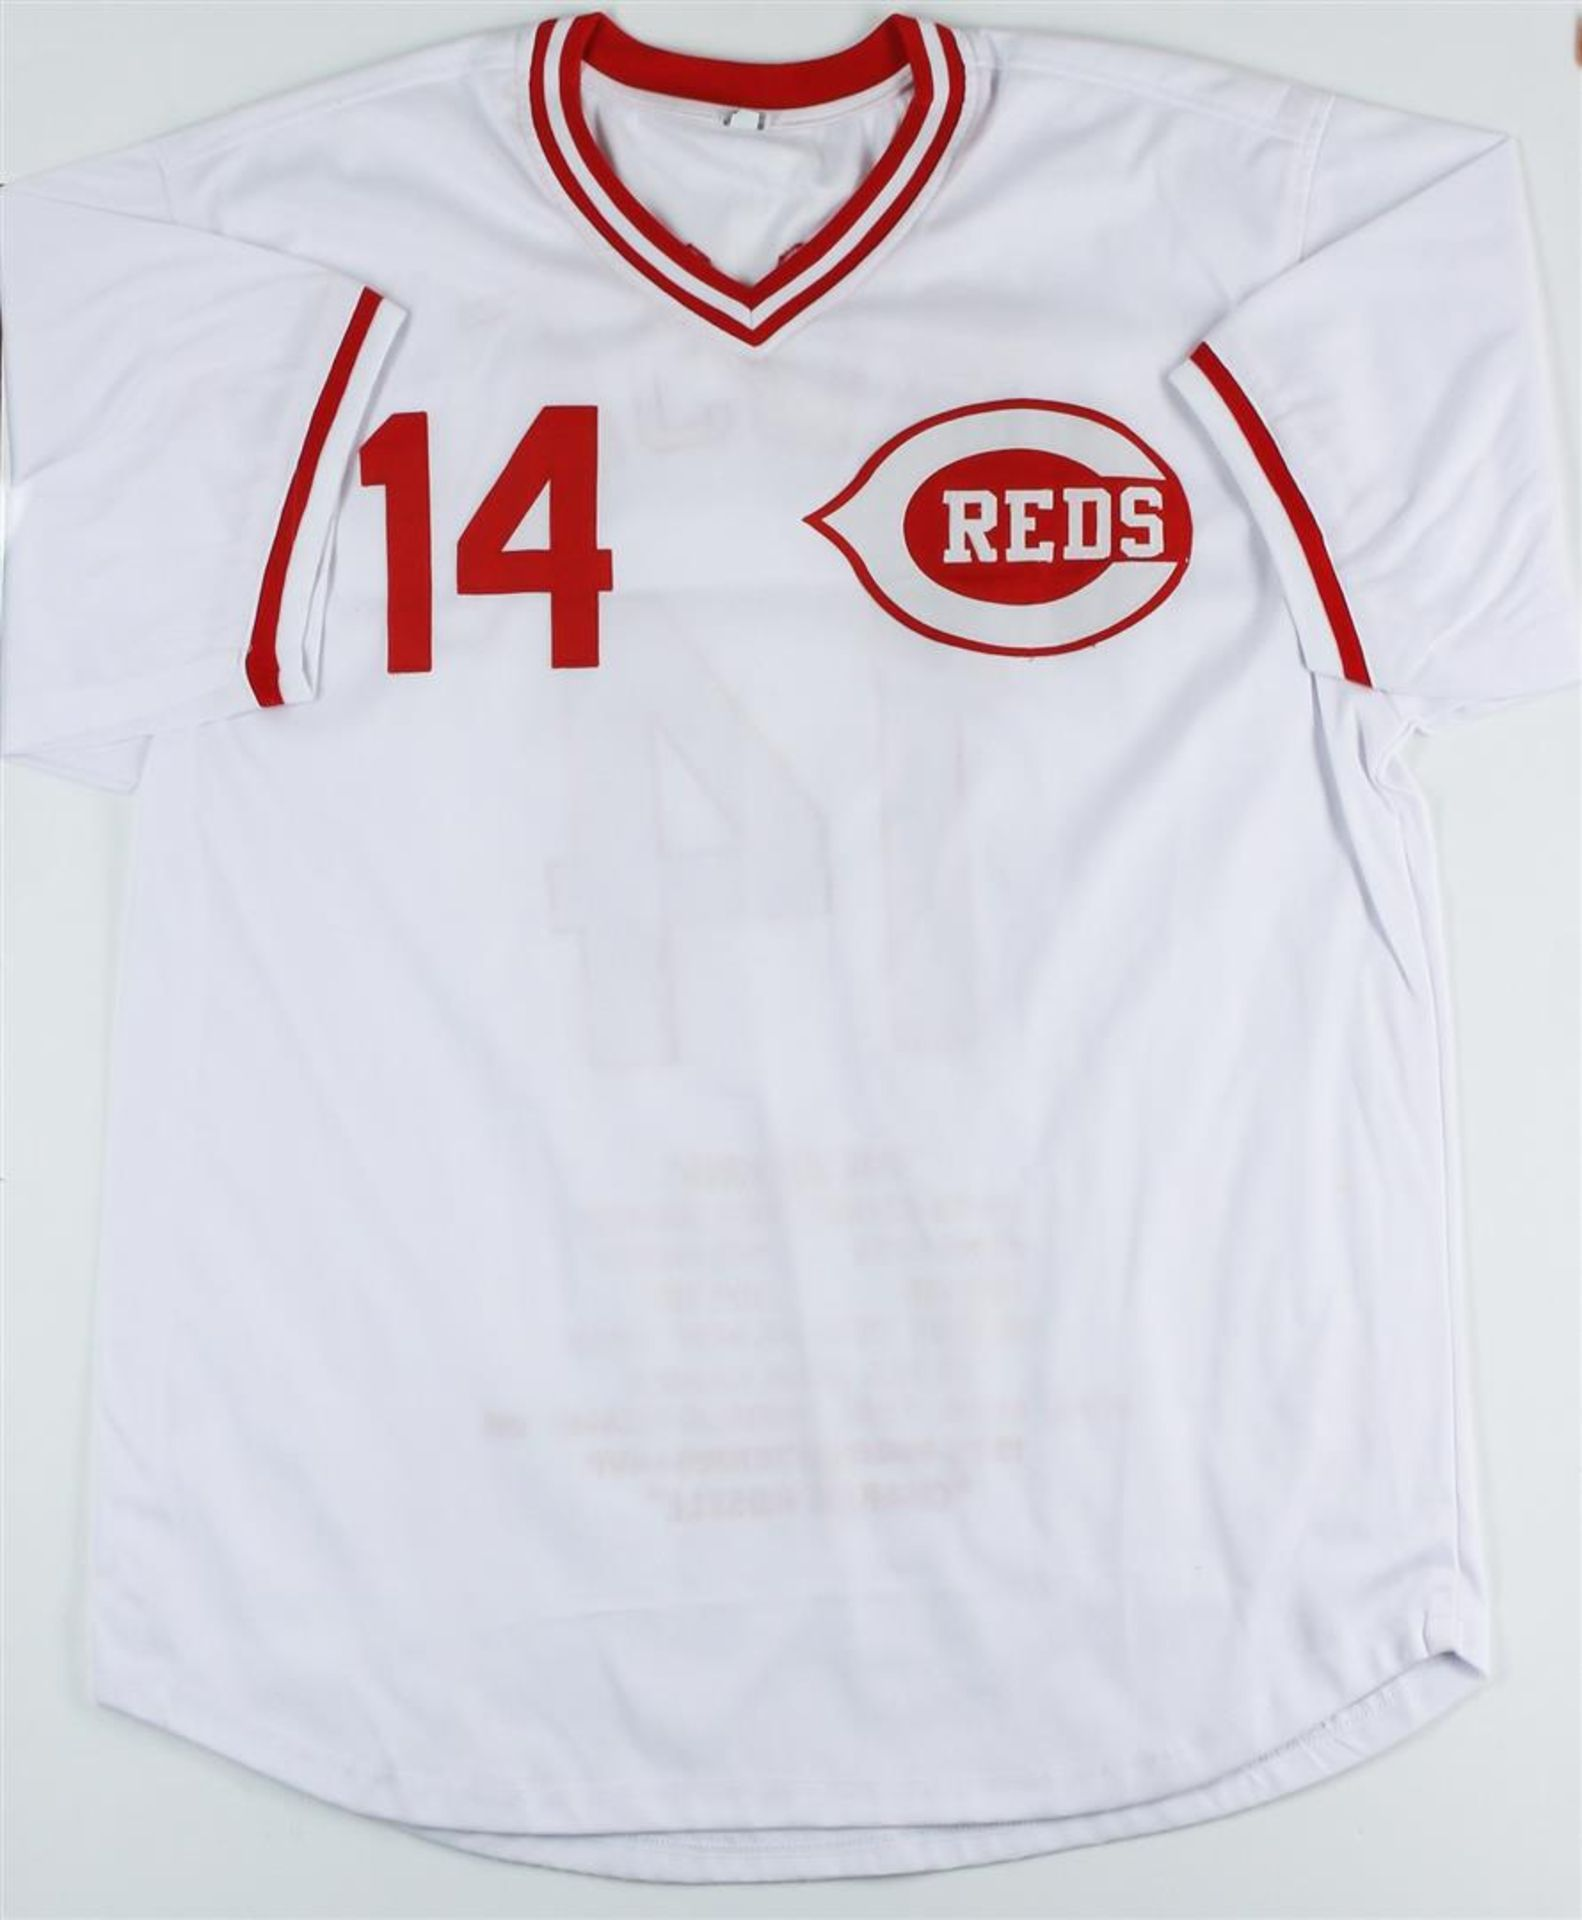 Cincinnati Reds Pete Rose Autographed Jersey With Stats - Image 3 of 3